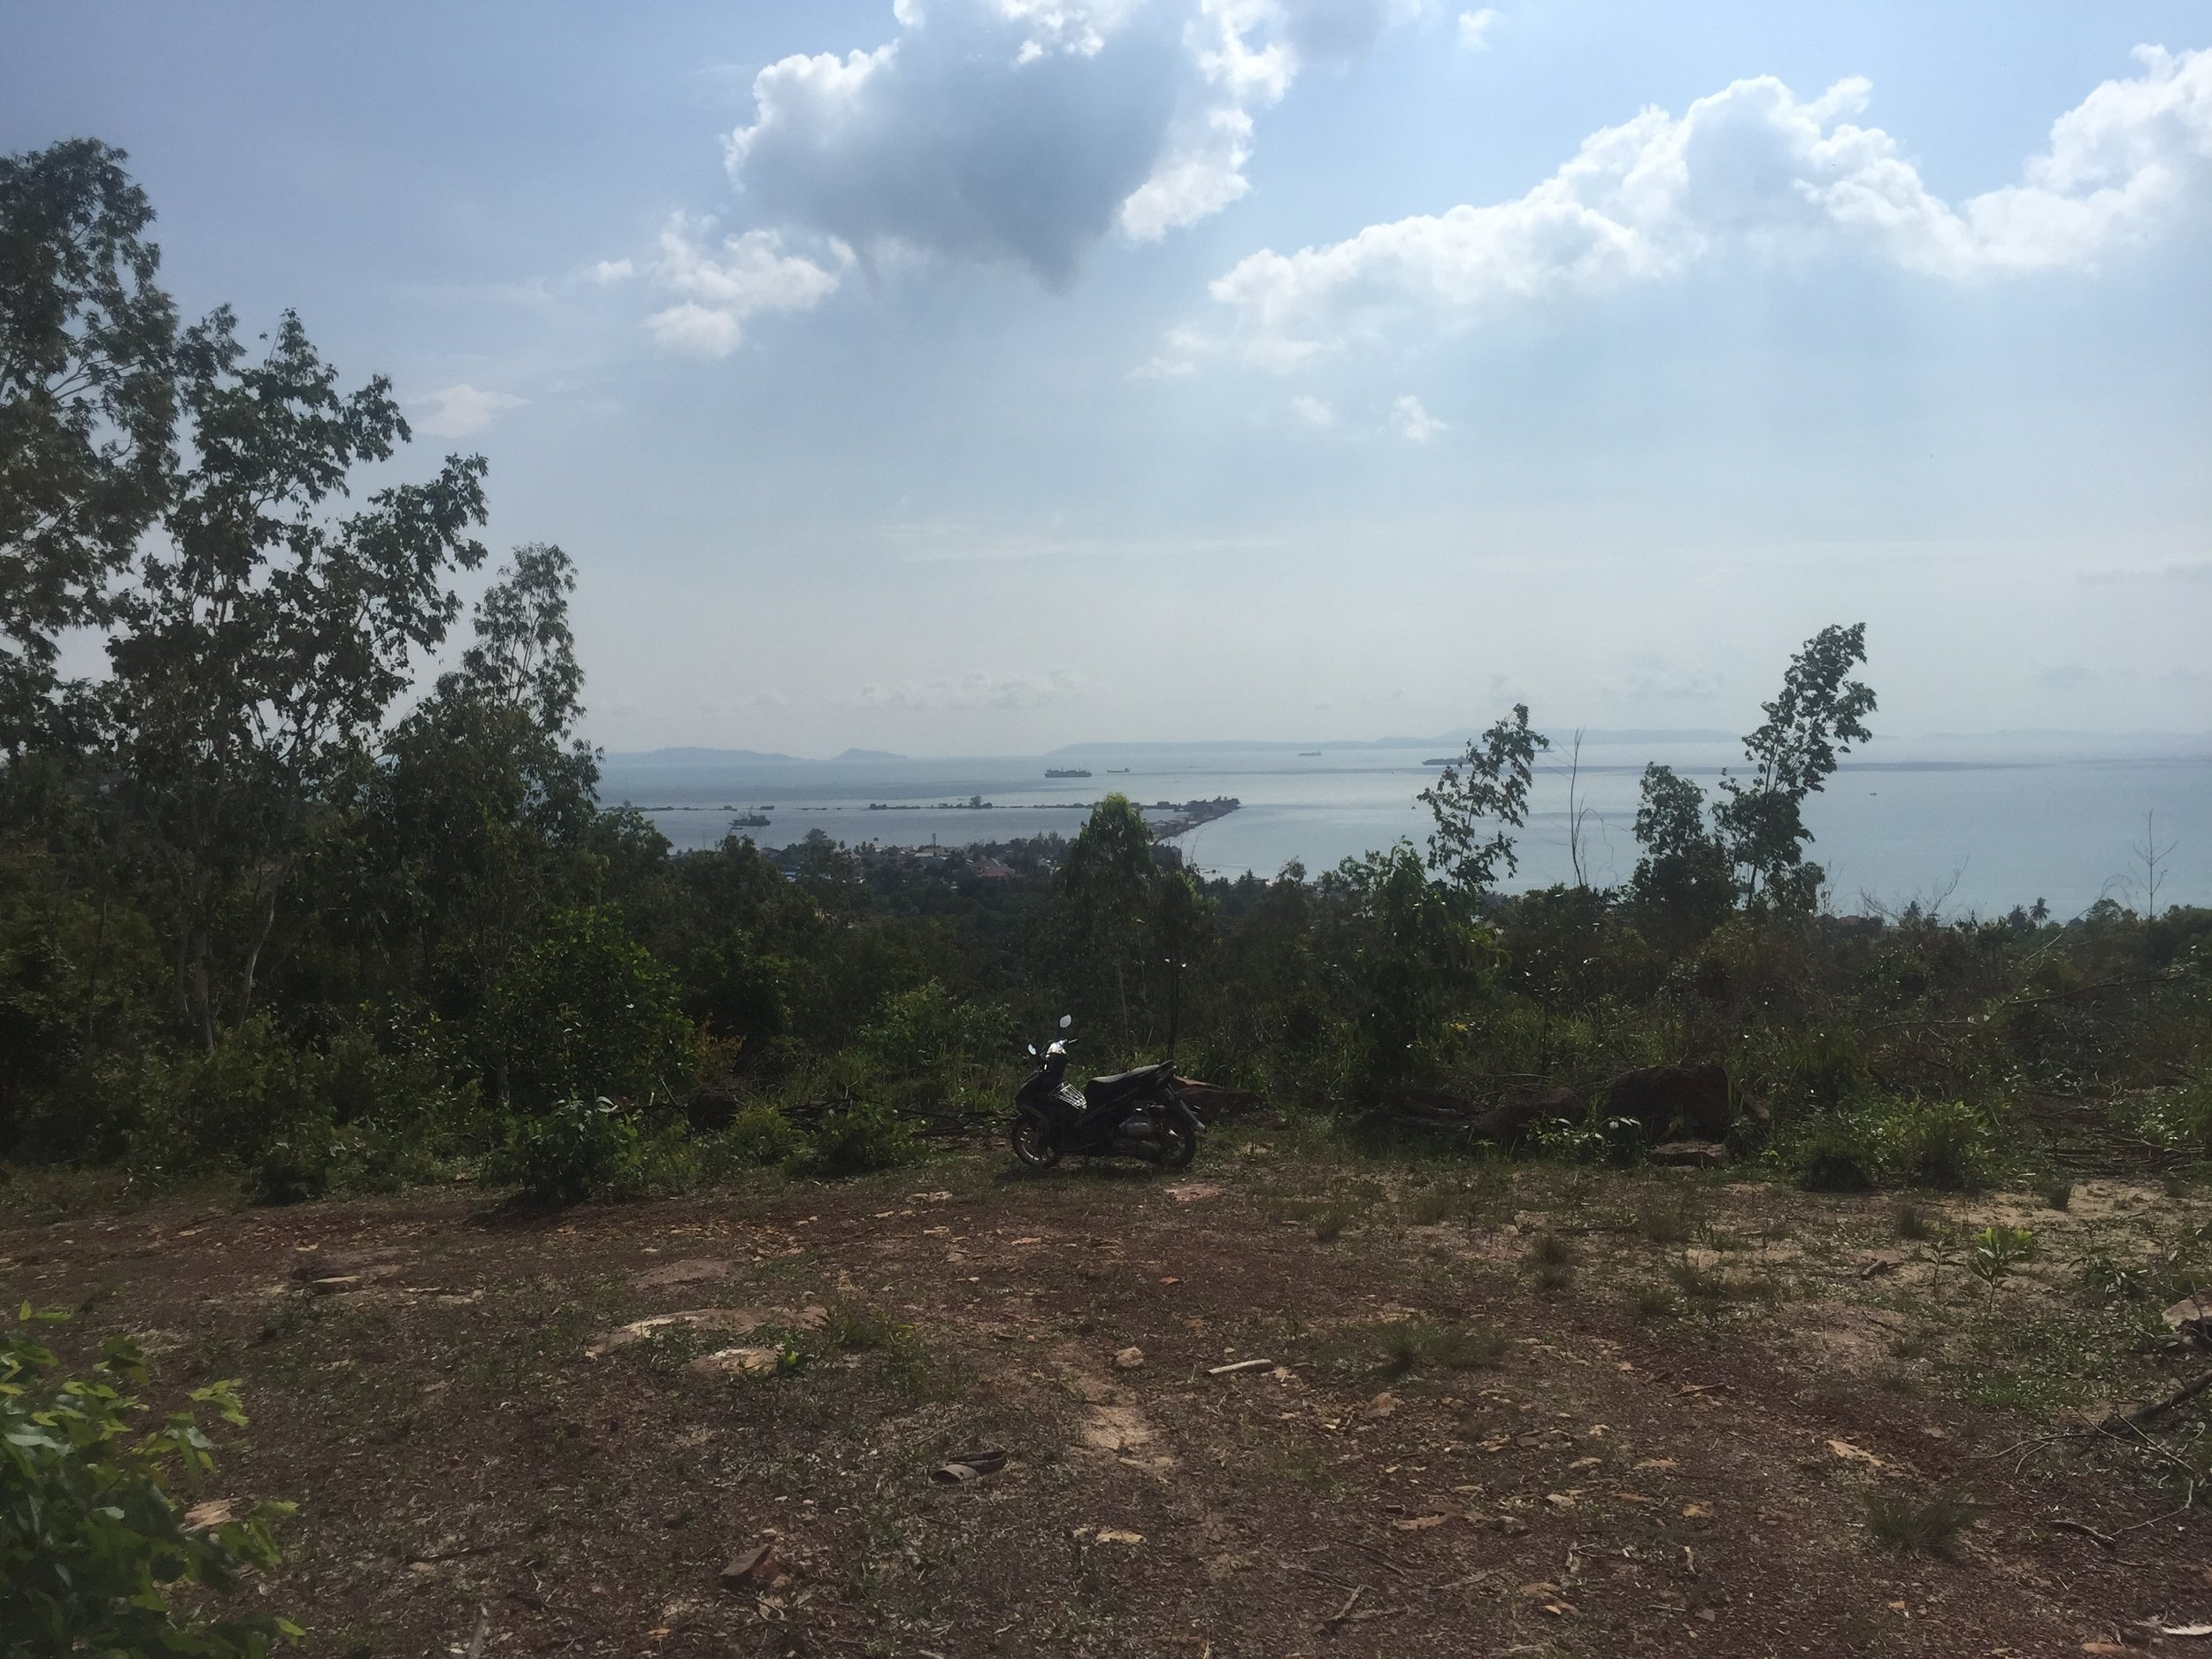 Riding around the hills outside of town